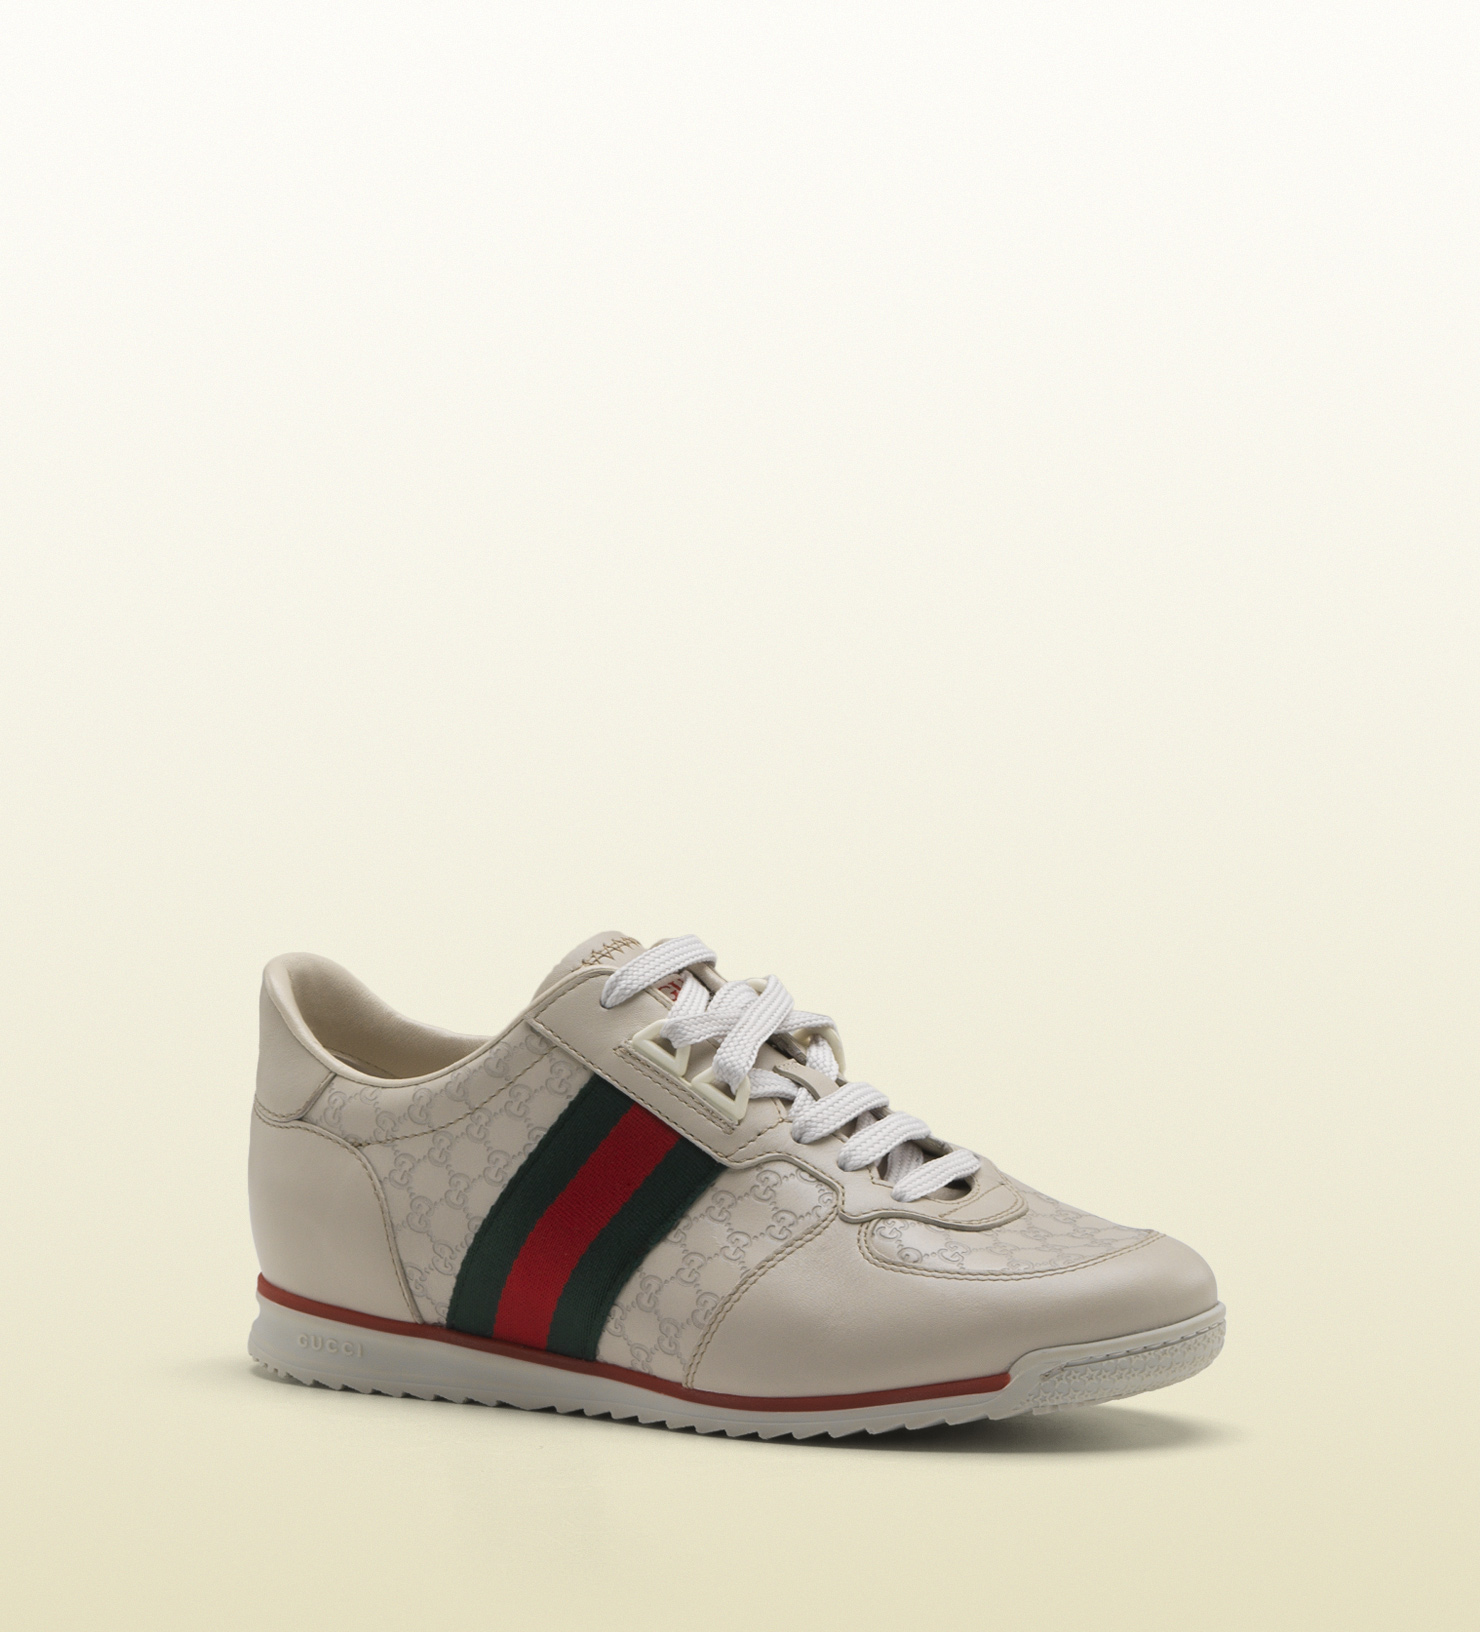 97616a44a9aa8 Lyst - Gucci Sl73 Laceup Trainer with Signature Web Gucci Label On ...